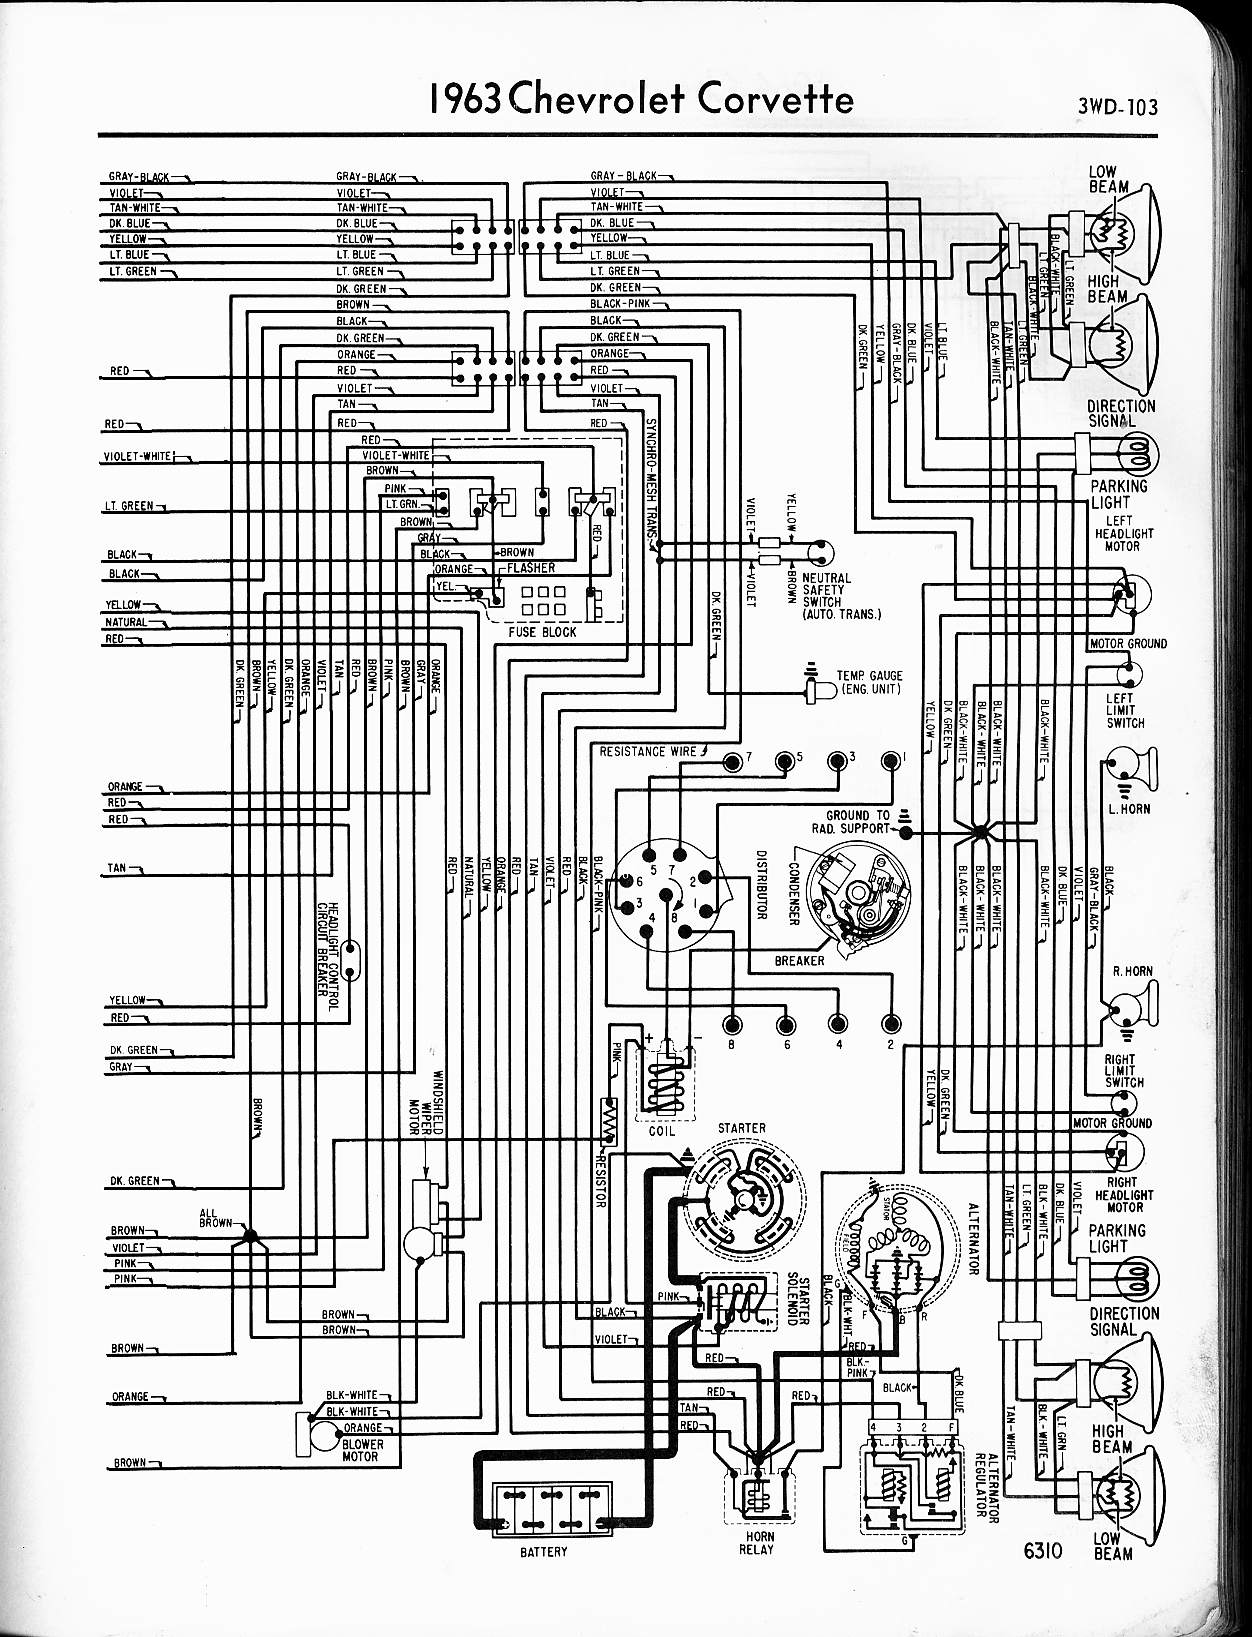 1966 Corvette Headlight Wiring Diagram Archive Of Automotive For A 77 Dashboard 1967 Dash Schematic Detailed Diagrams Rh Standrewsthorntonheath Co Uk